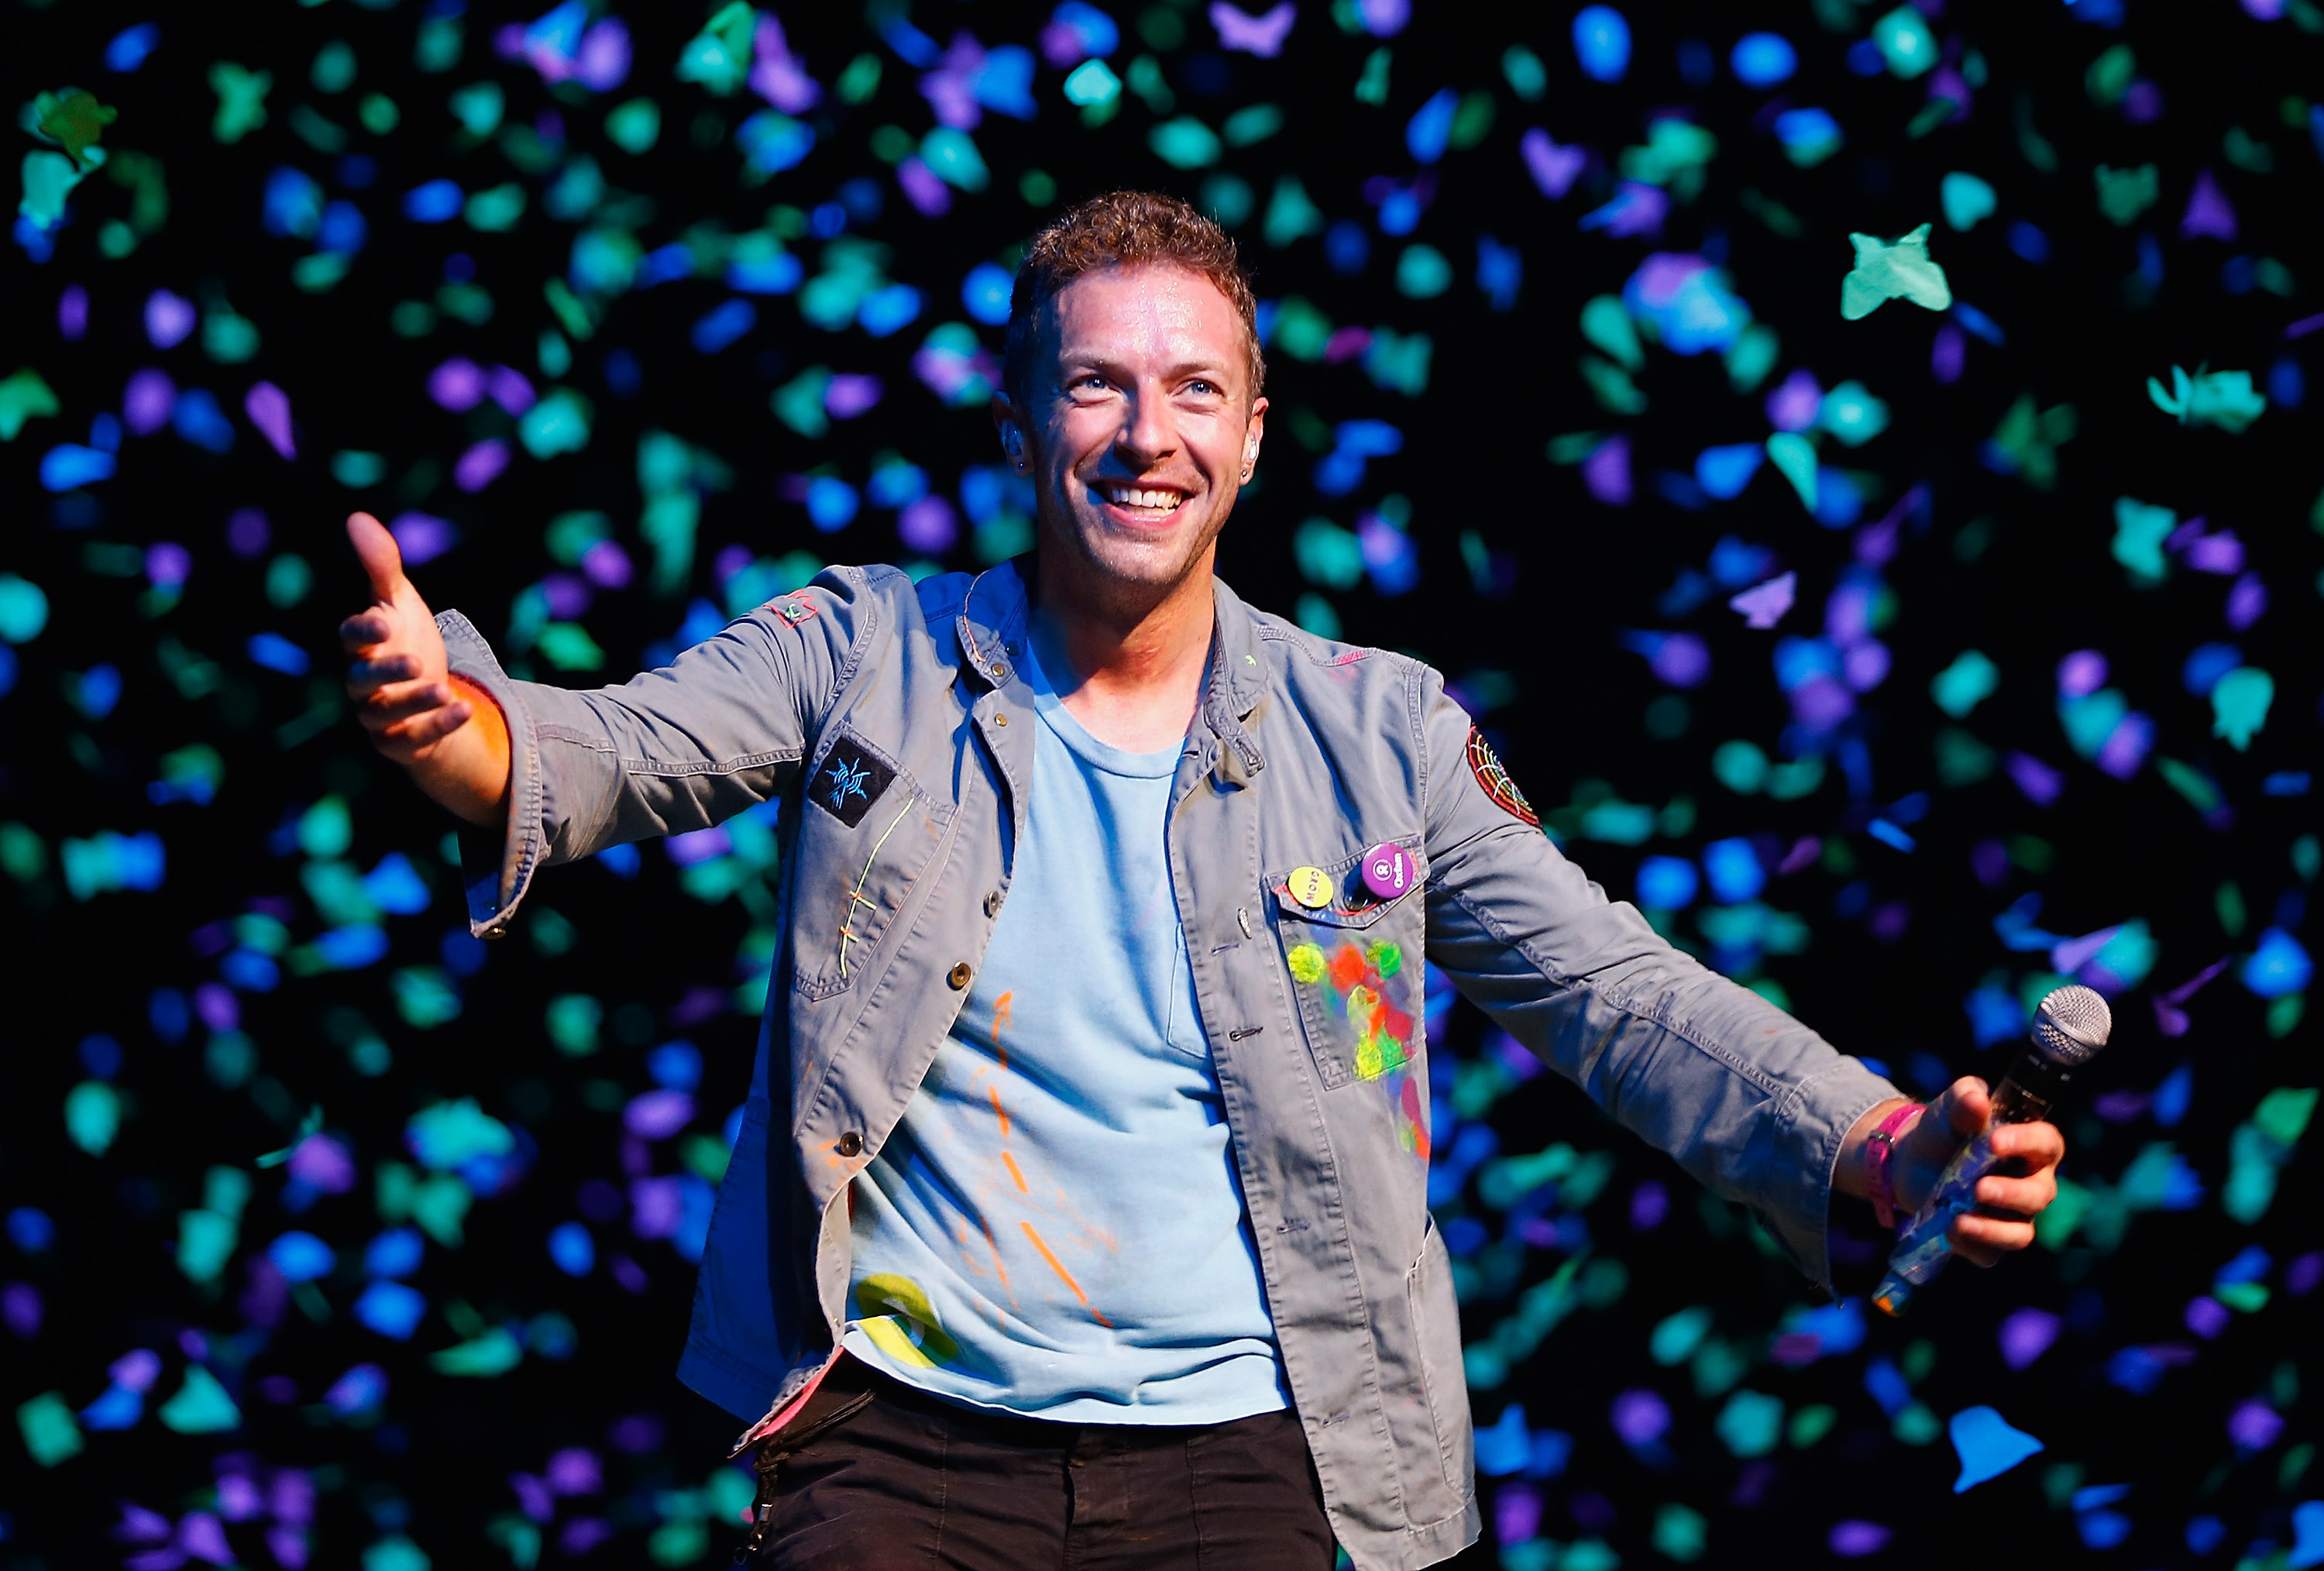 AUCKLAND, NEW ZEALAND - NOVEMBER 10:  Chris Martin of Coldplay performs for fans on November 10, 2012 in Auckland, New Zealand.  (Photo by Shane Wenzlick/Getty Images)